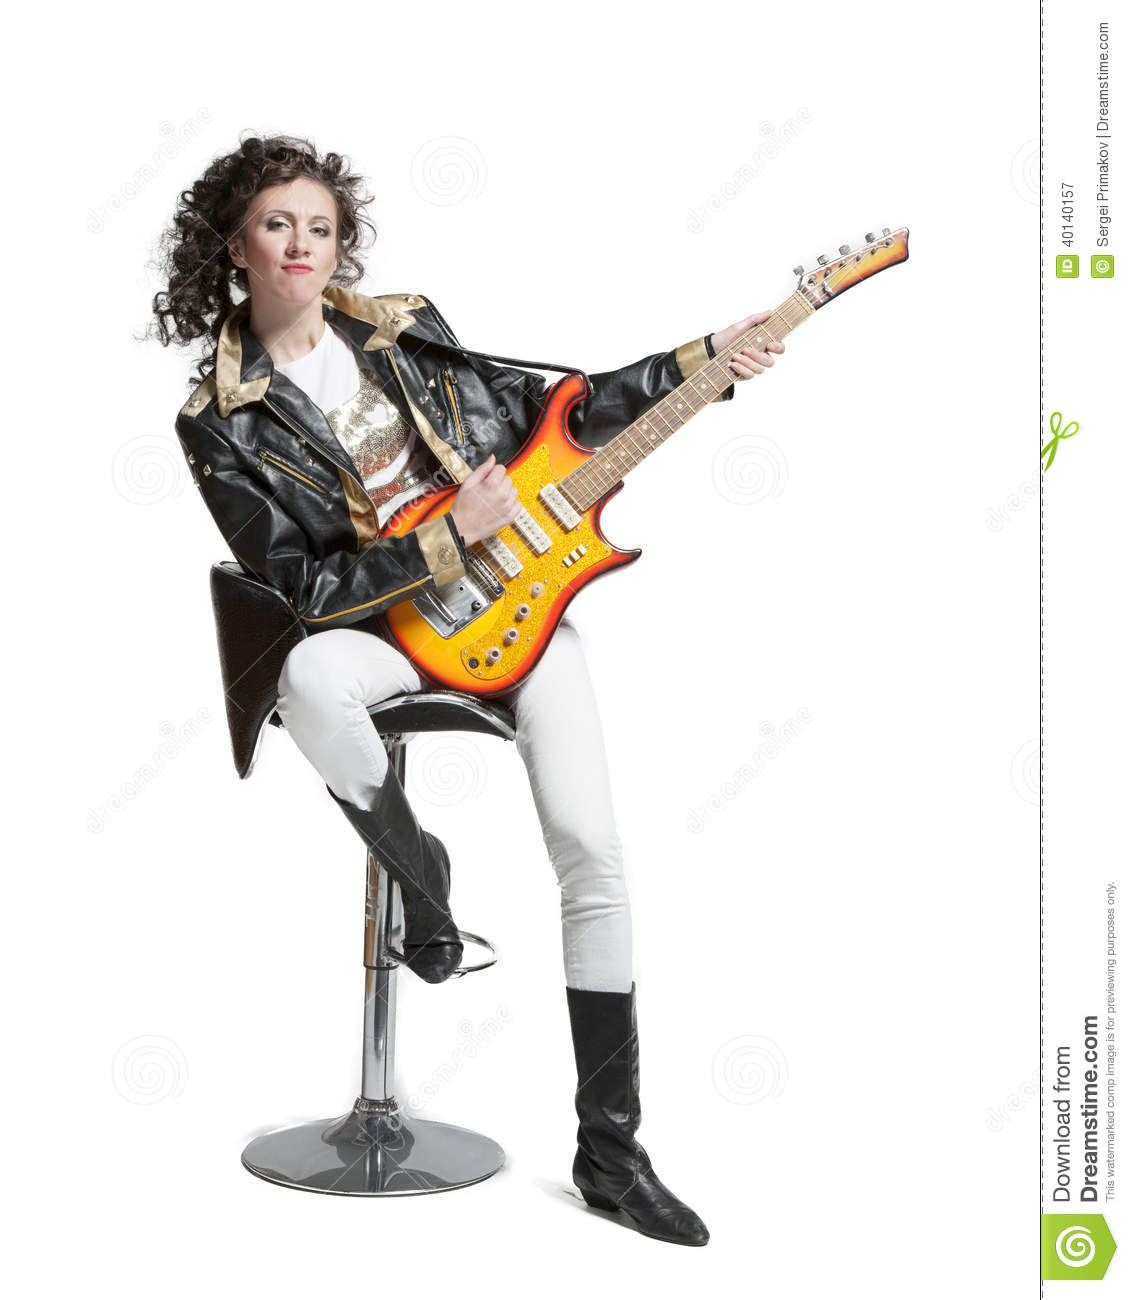 guitar playing chair sheepskin covers canada girl on electro stock photo image 40140157